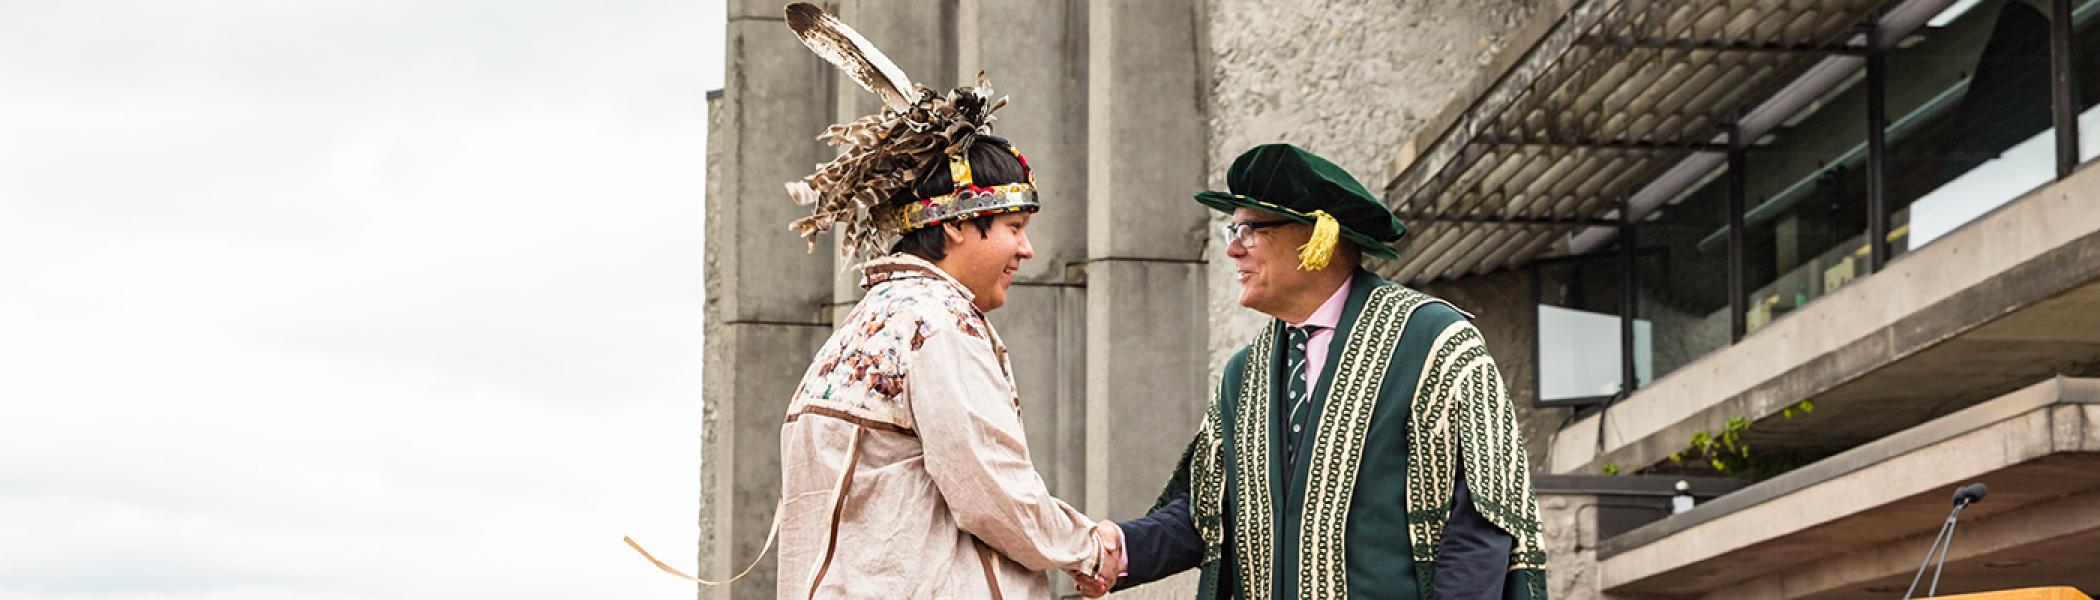 Dr. Don Tapscott shaking hands at convocation with an Indigenous Studies graduate